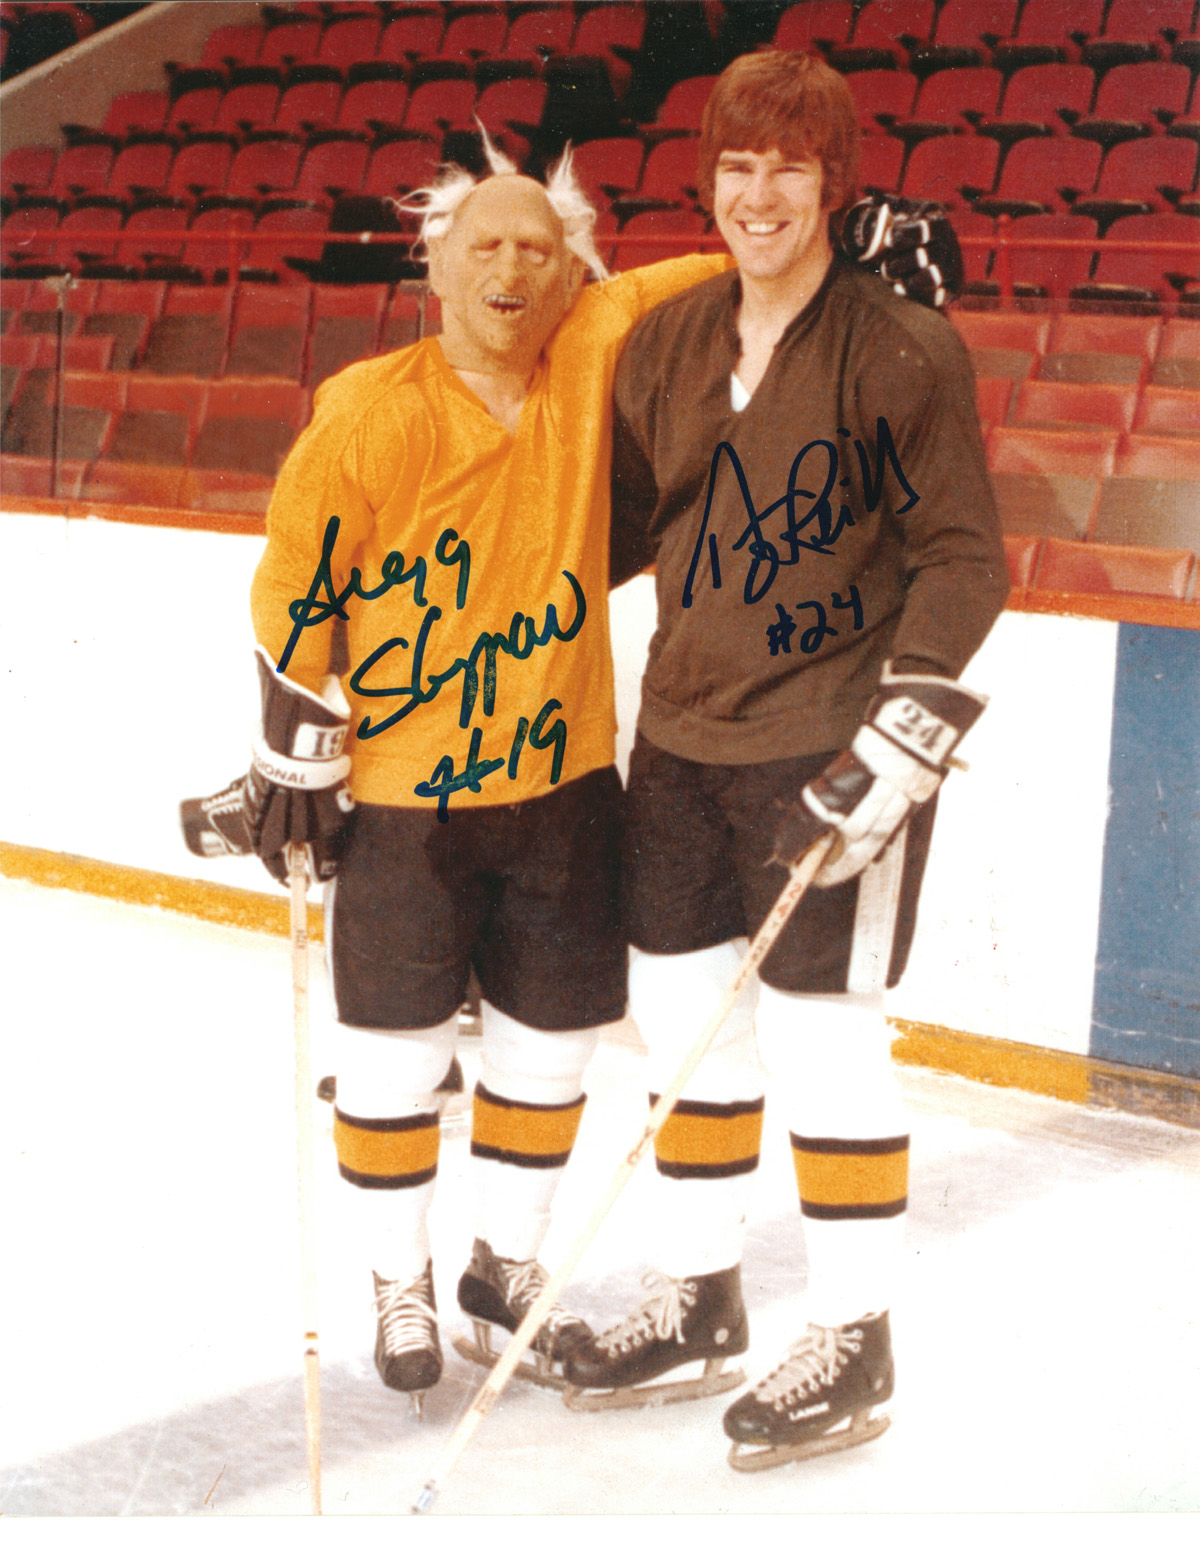 Gregg Sheppard & Terry O'Reilly autographed 8x10